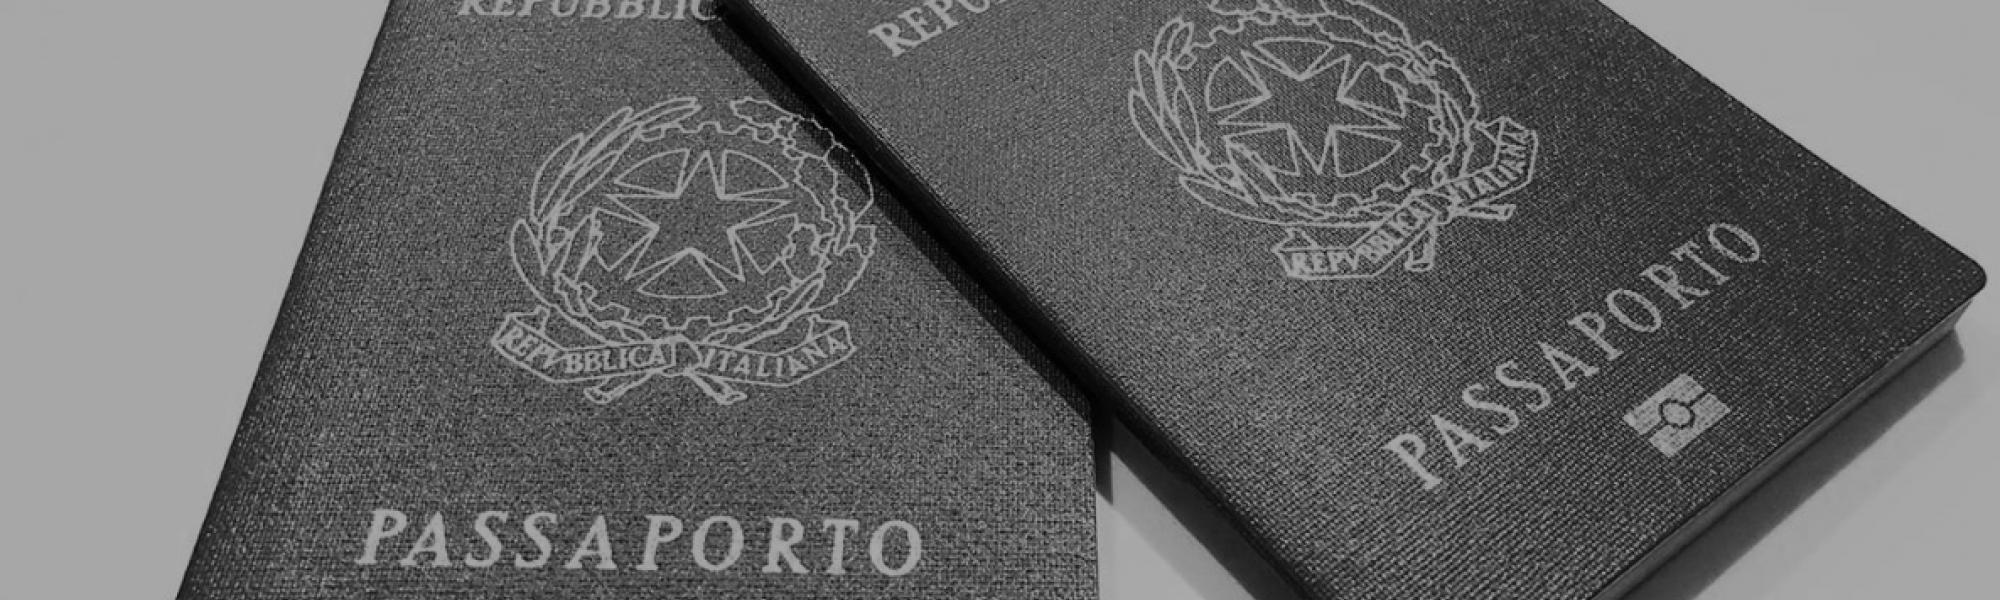 Partner with us to Apply for Italian Citizenship!